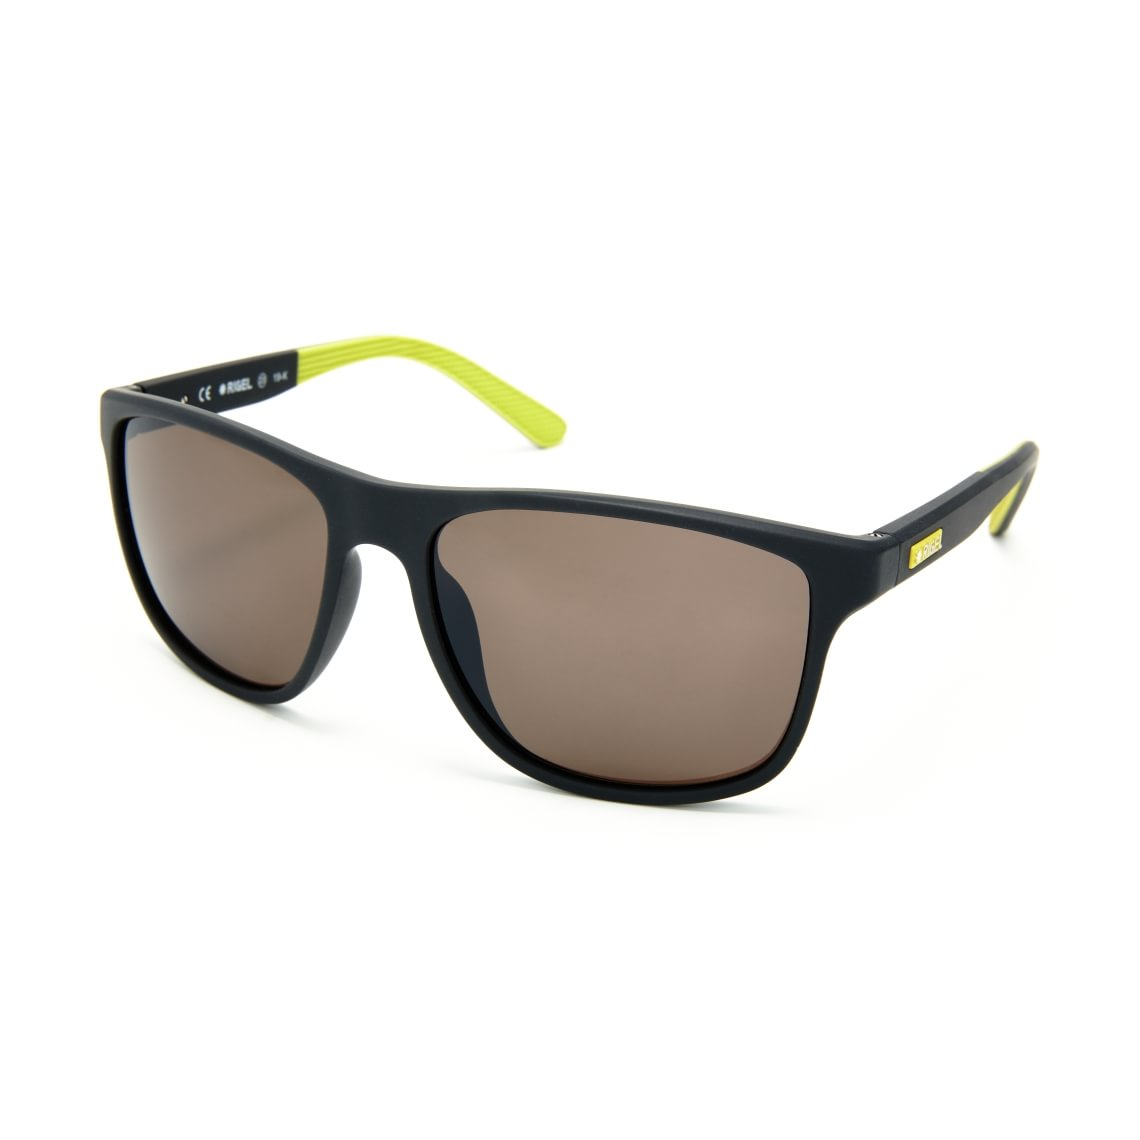 RIGEL Polarized Brown Stellar C5 5817